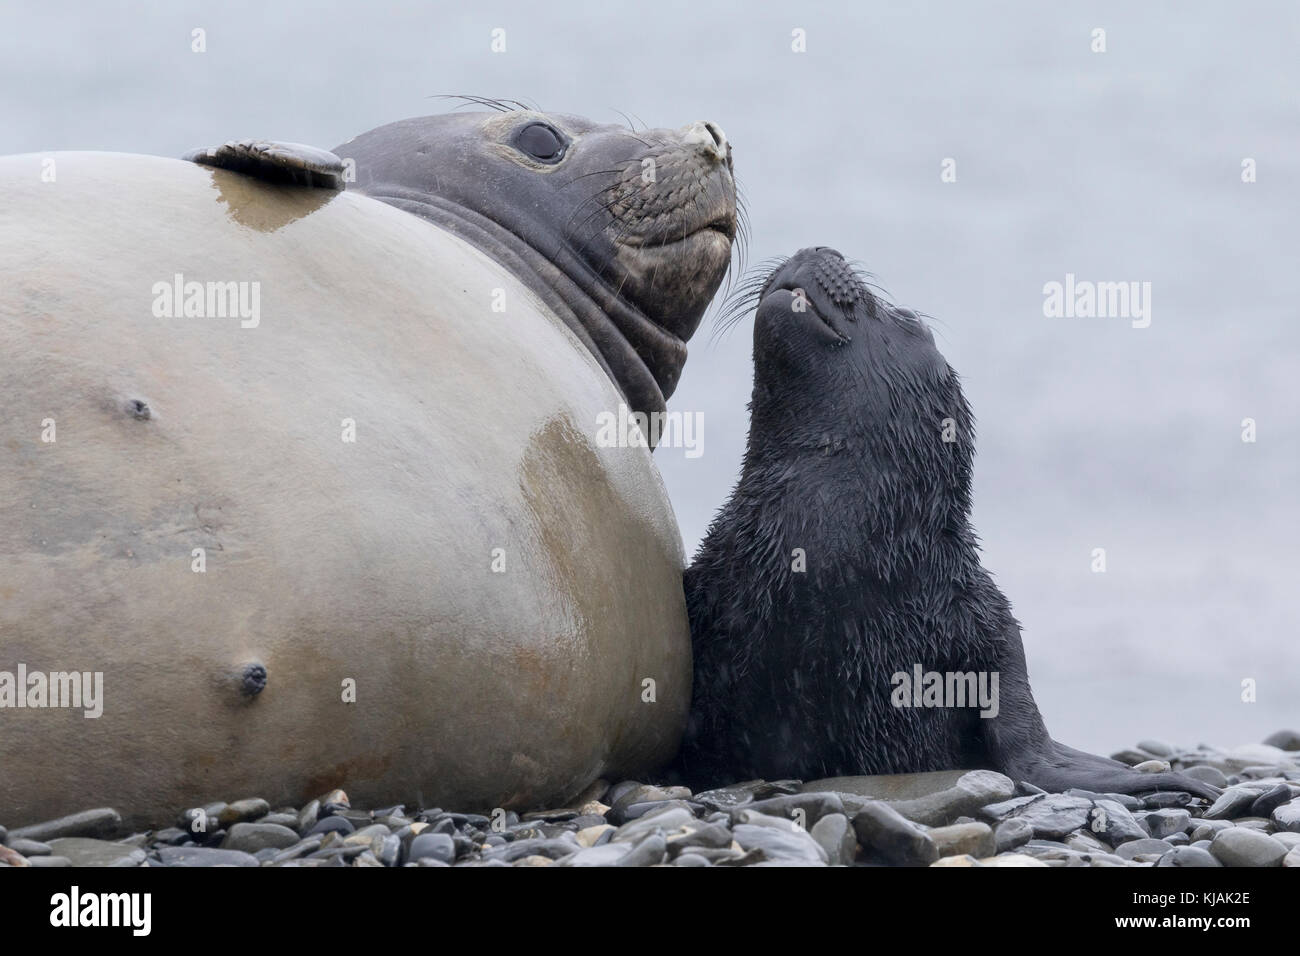 Female elephant seal with newborn pup on Peggotty Bluff beach shingle at King Haakon Bay, South Georgia Island - Stock Image